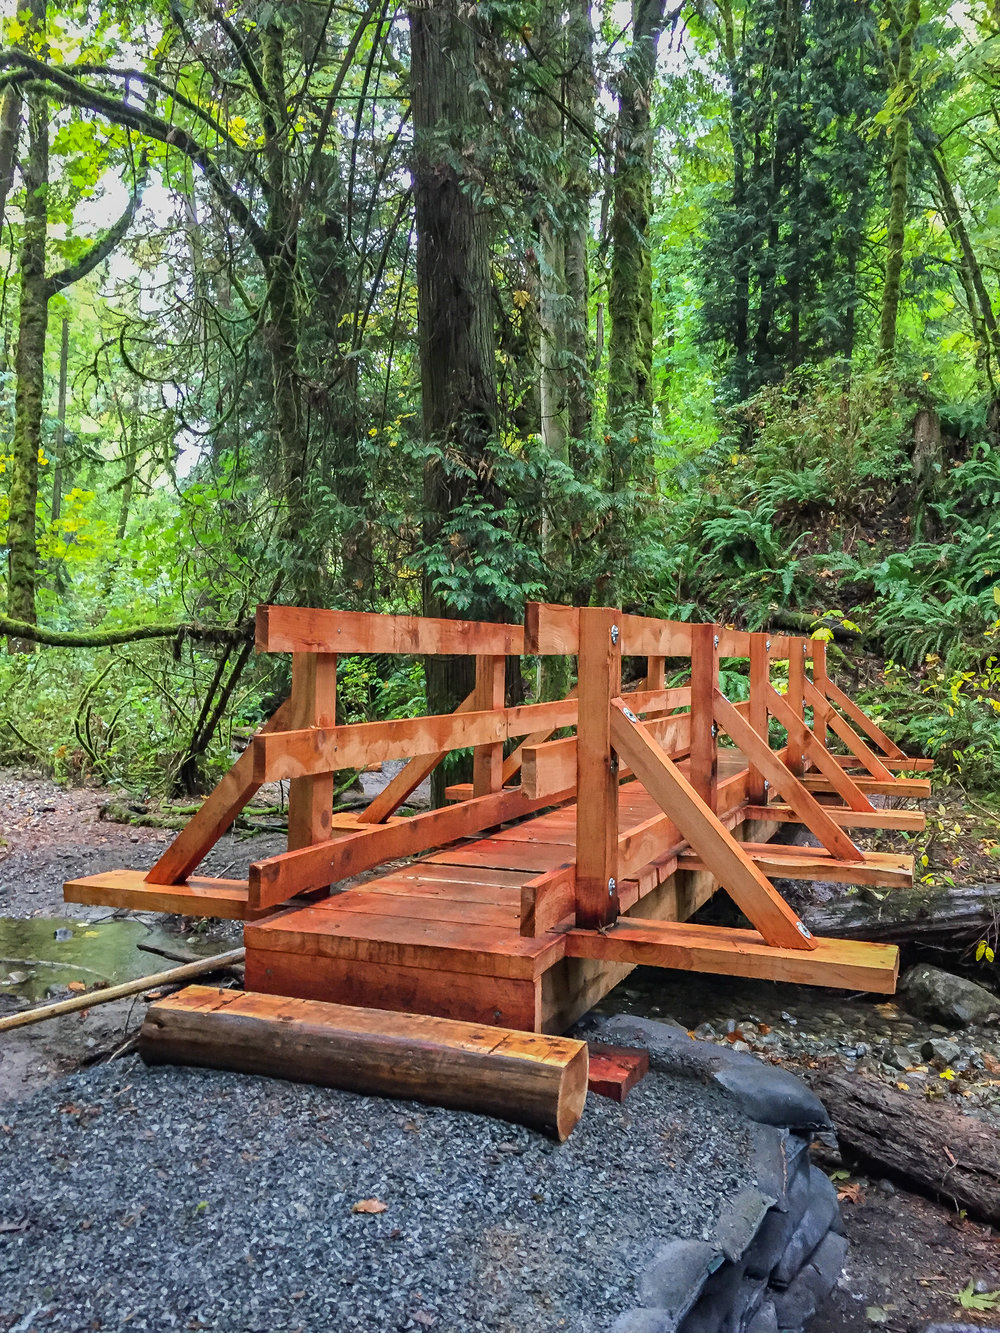 A new bridge installed on the Creekside Trail